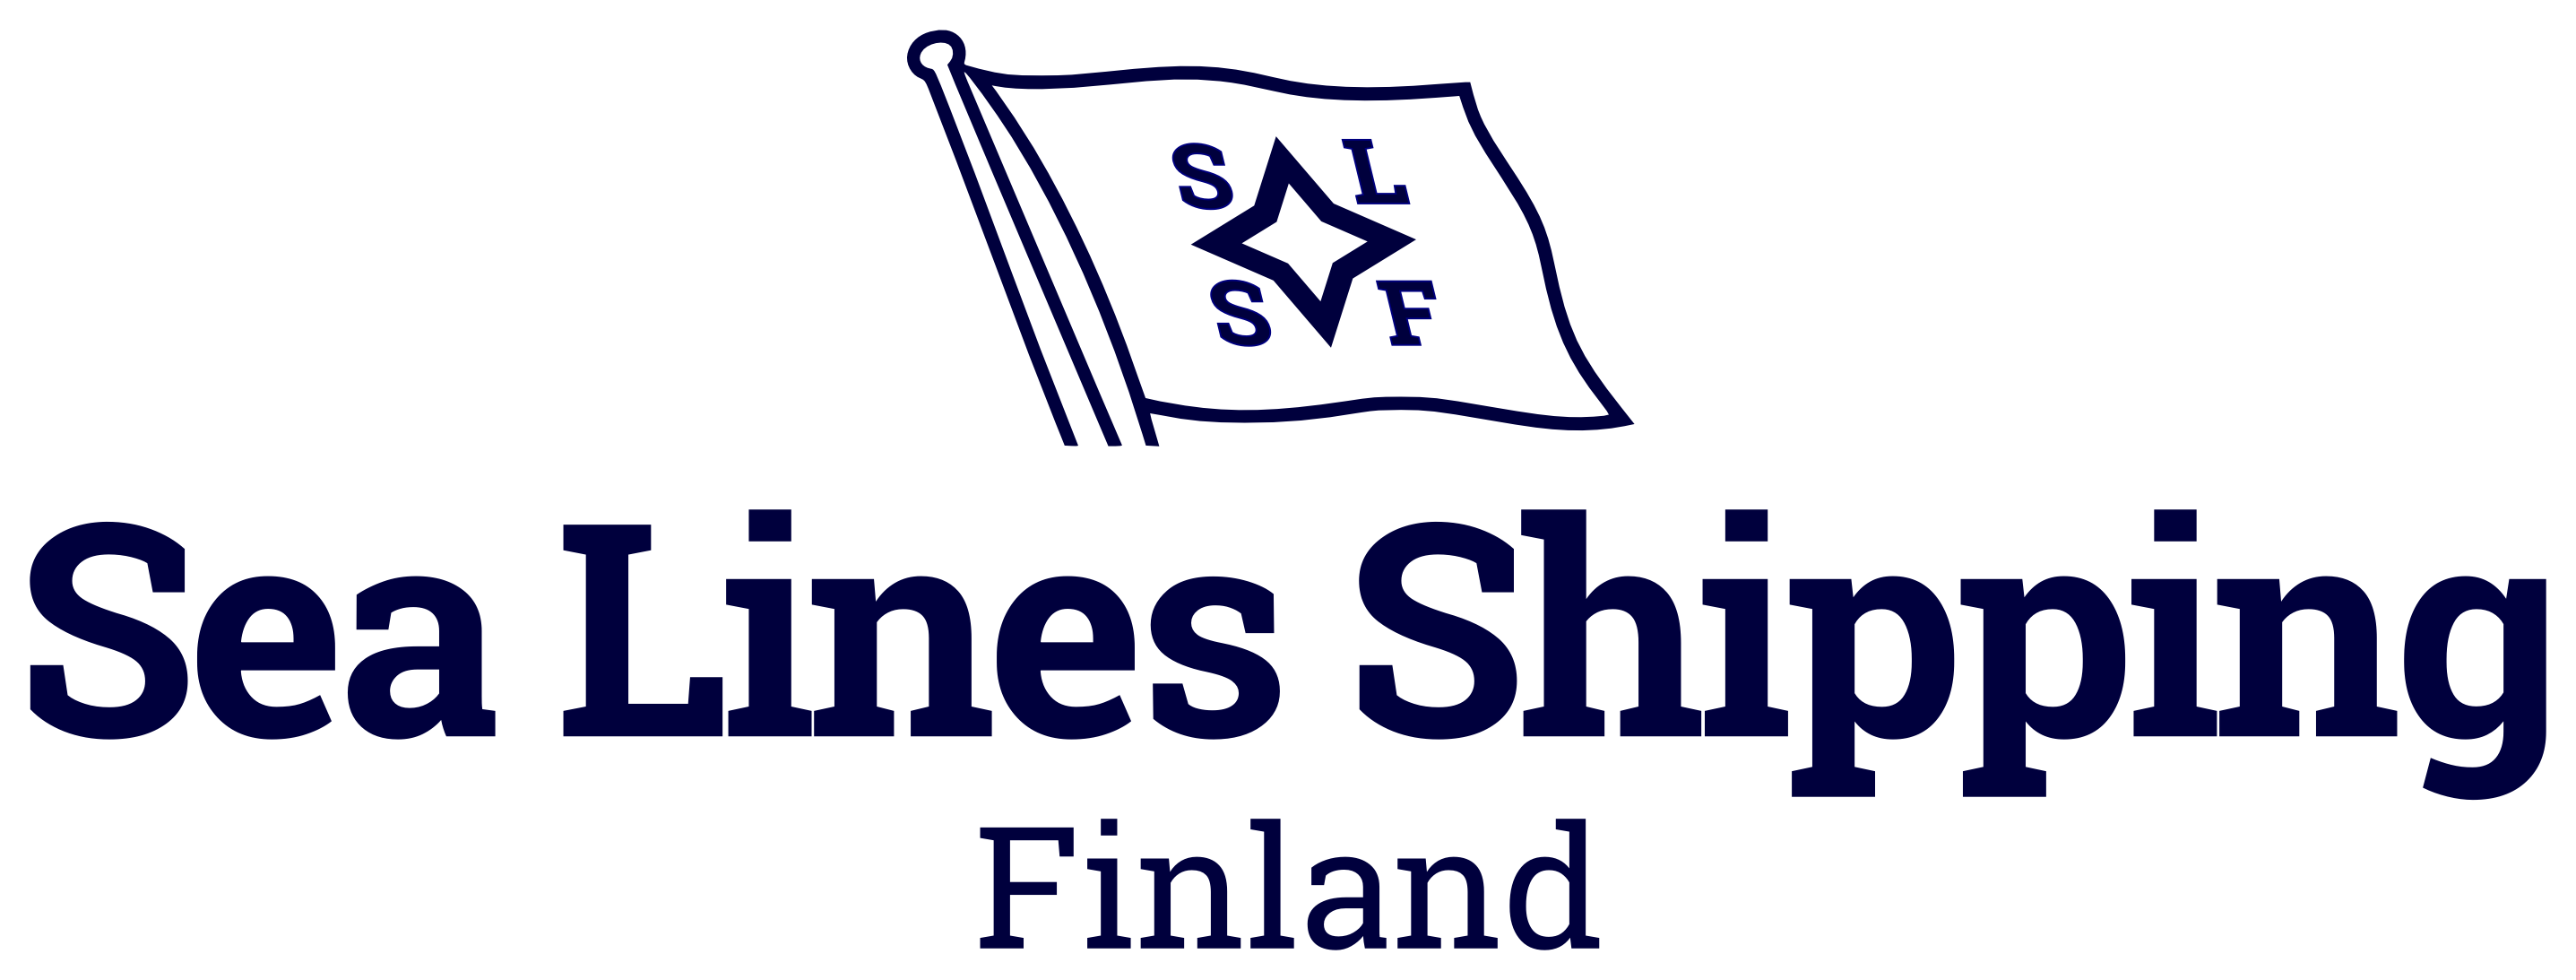 Sea Lines Shipping Finland